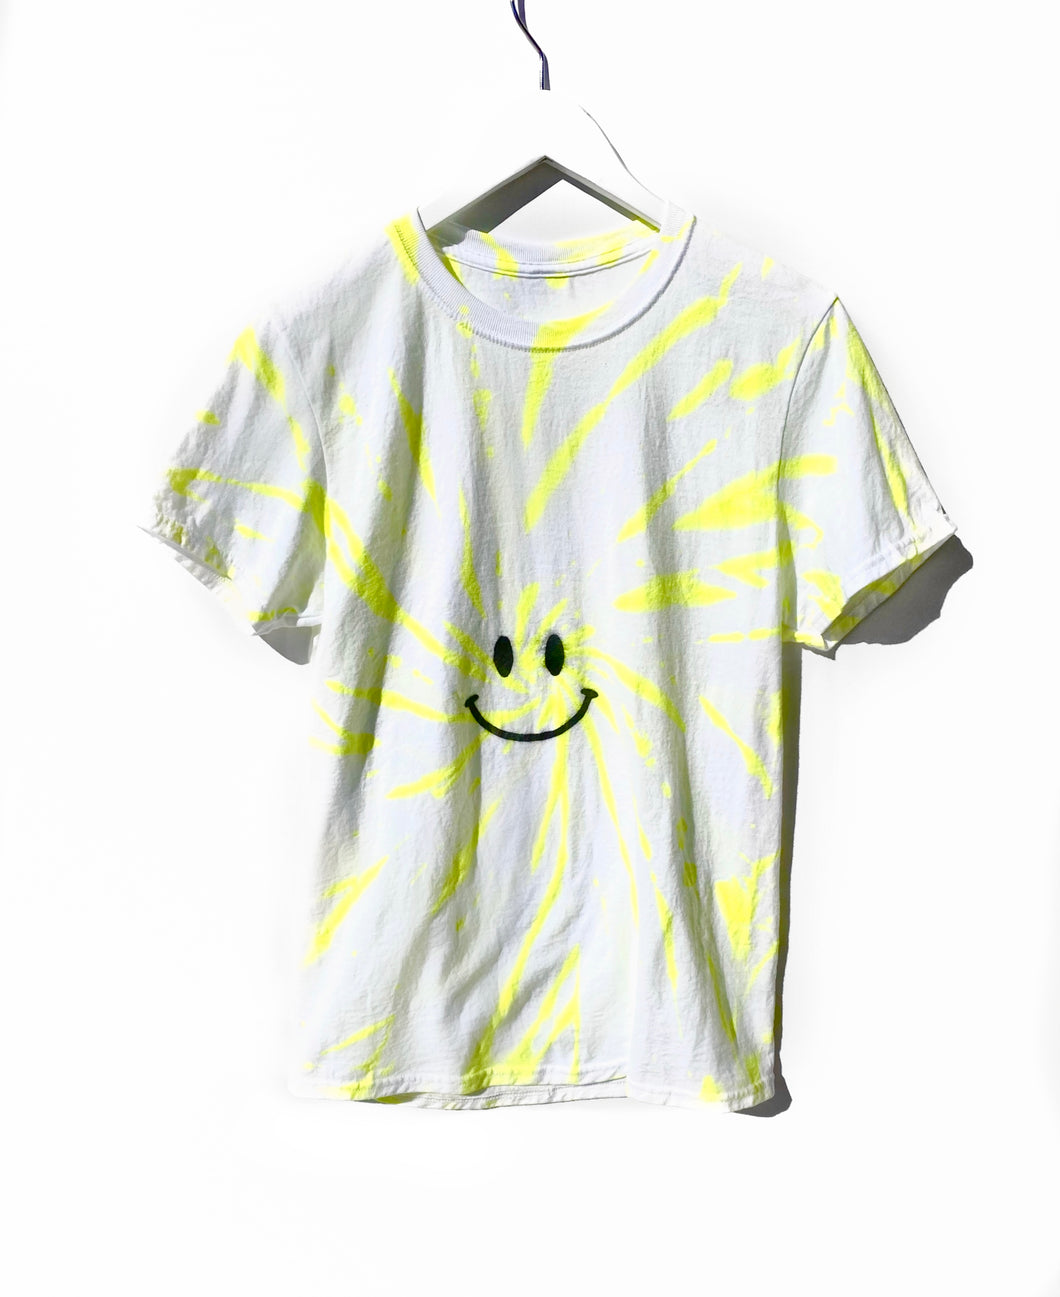 Crew T-Shirt / Neon Yellow Happy Face